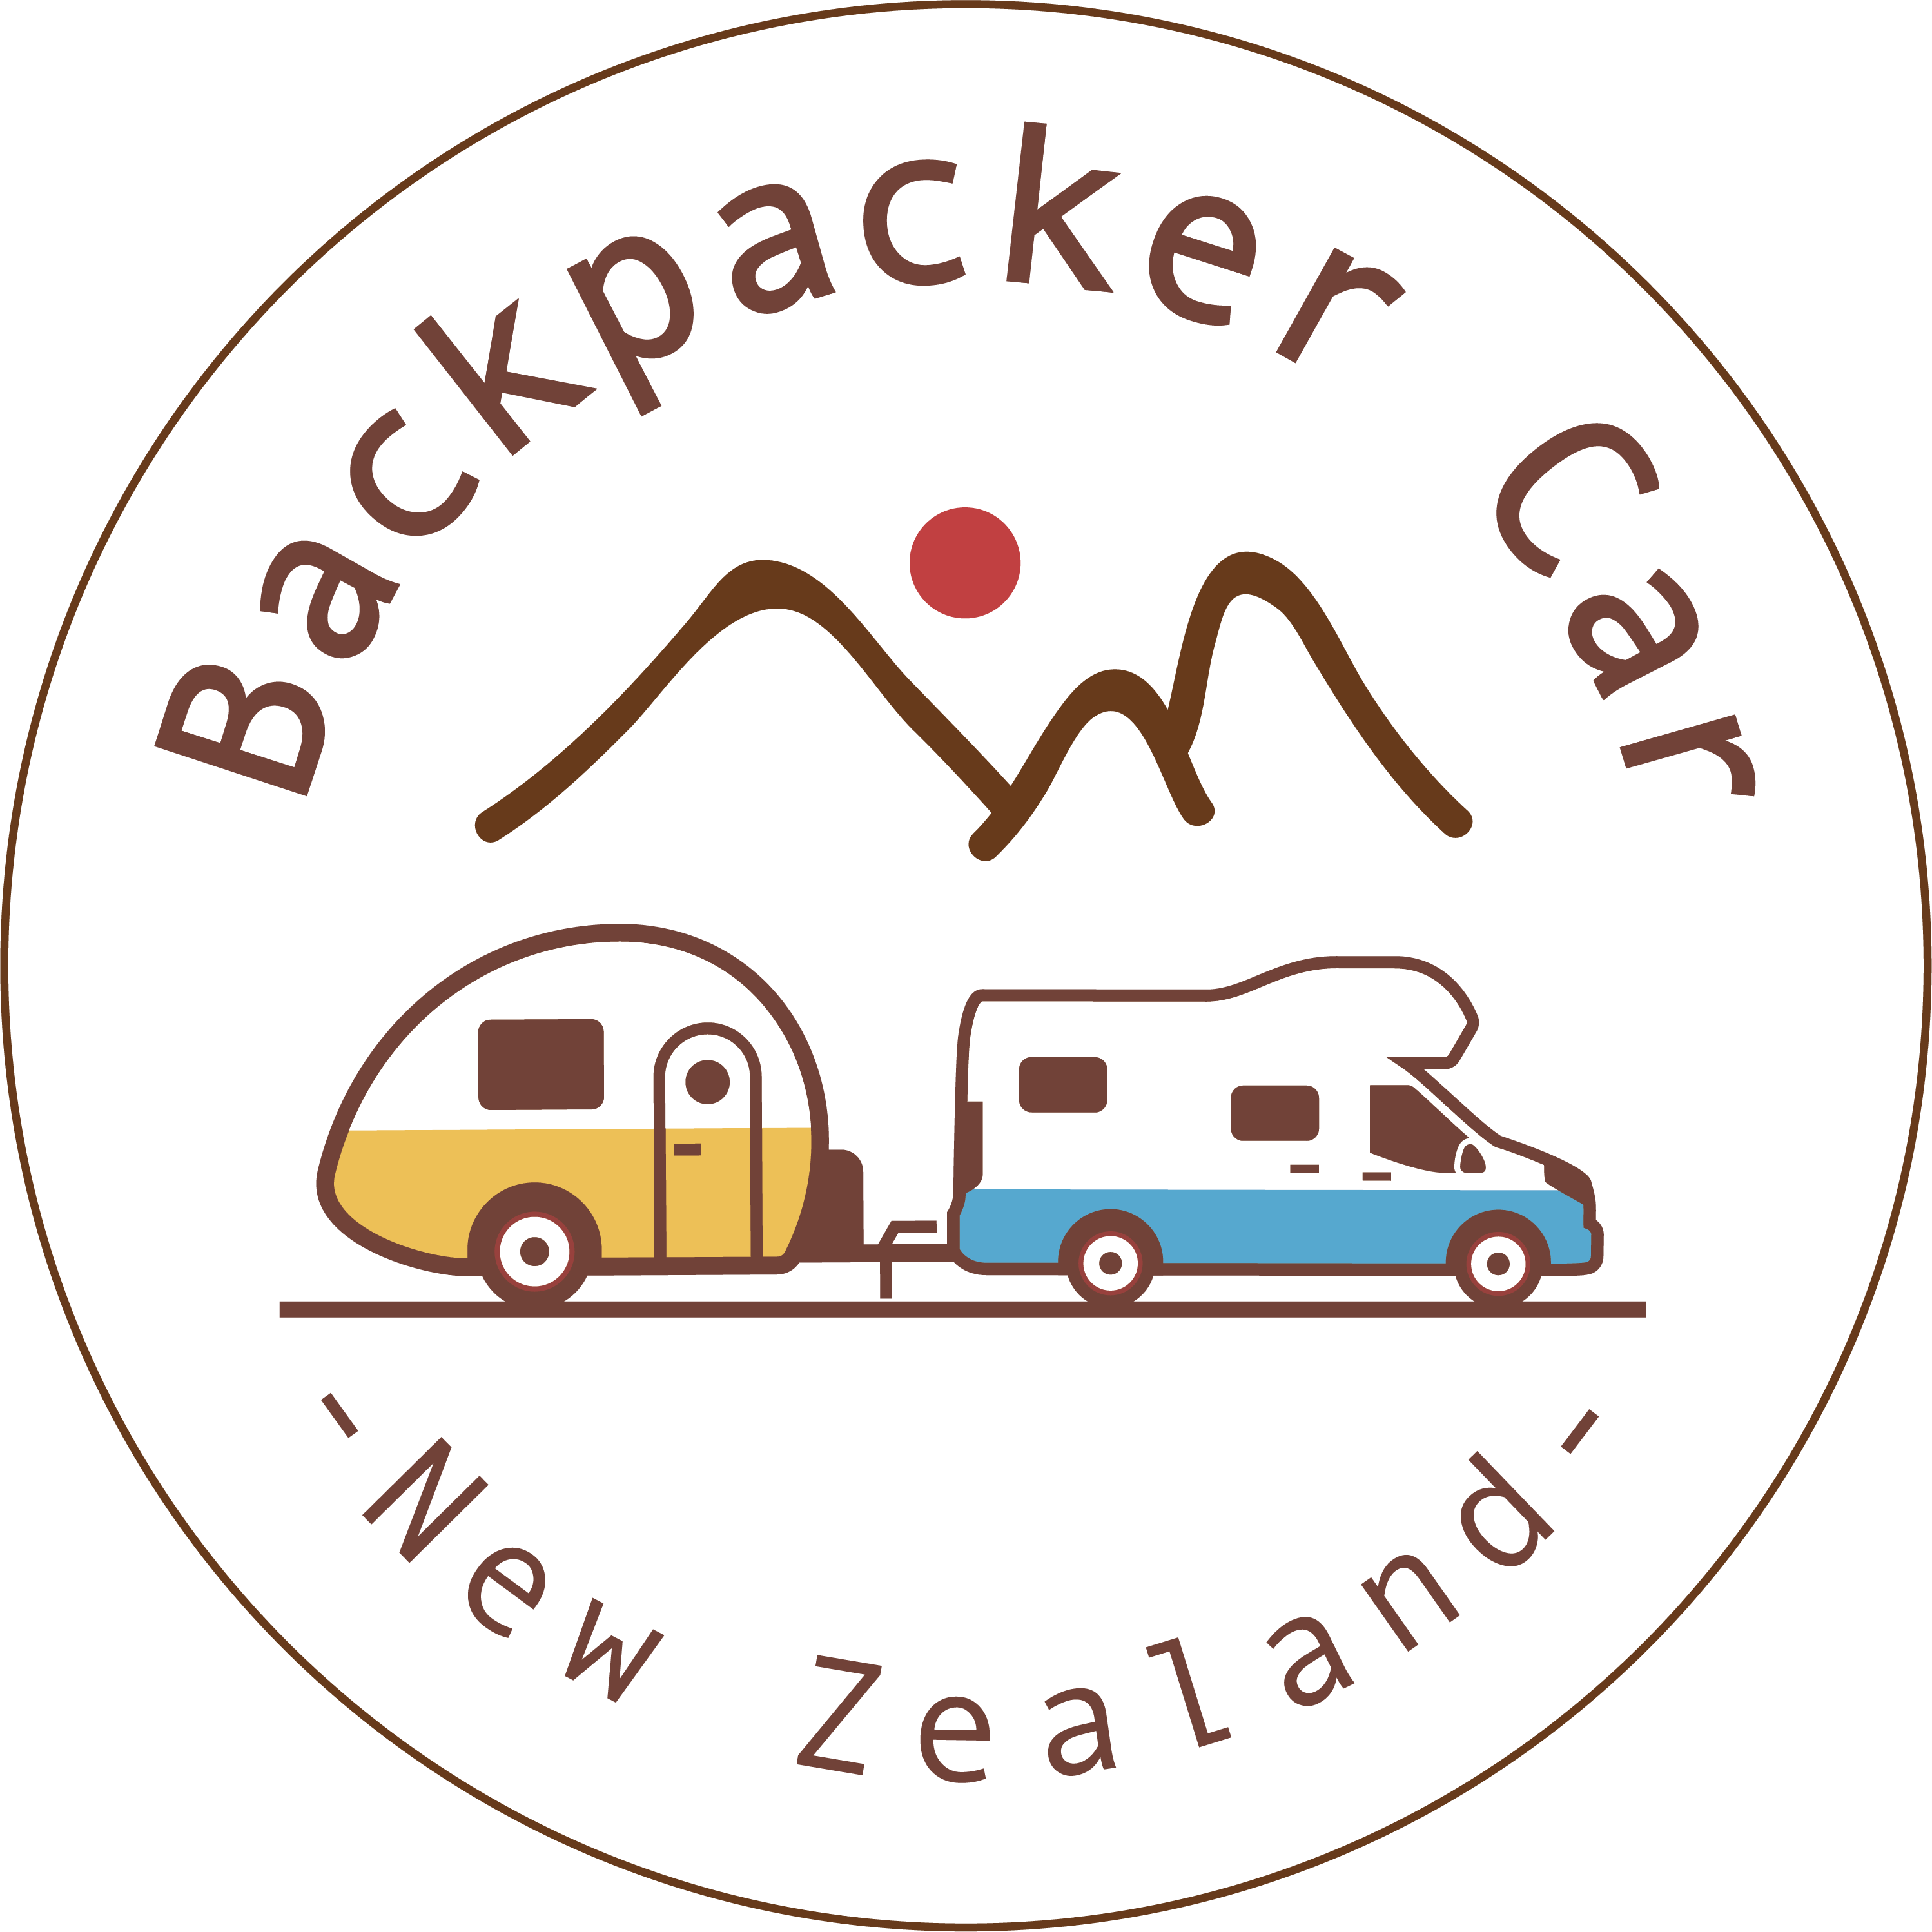 Backpacker Car New Zealand